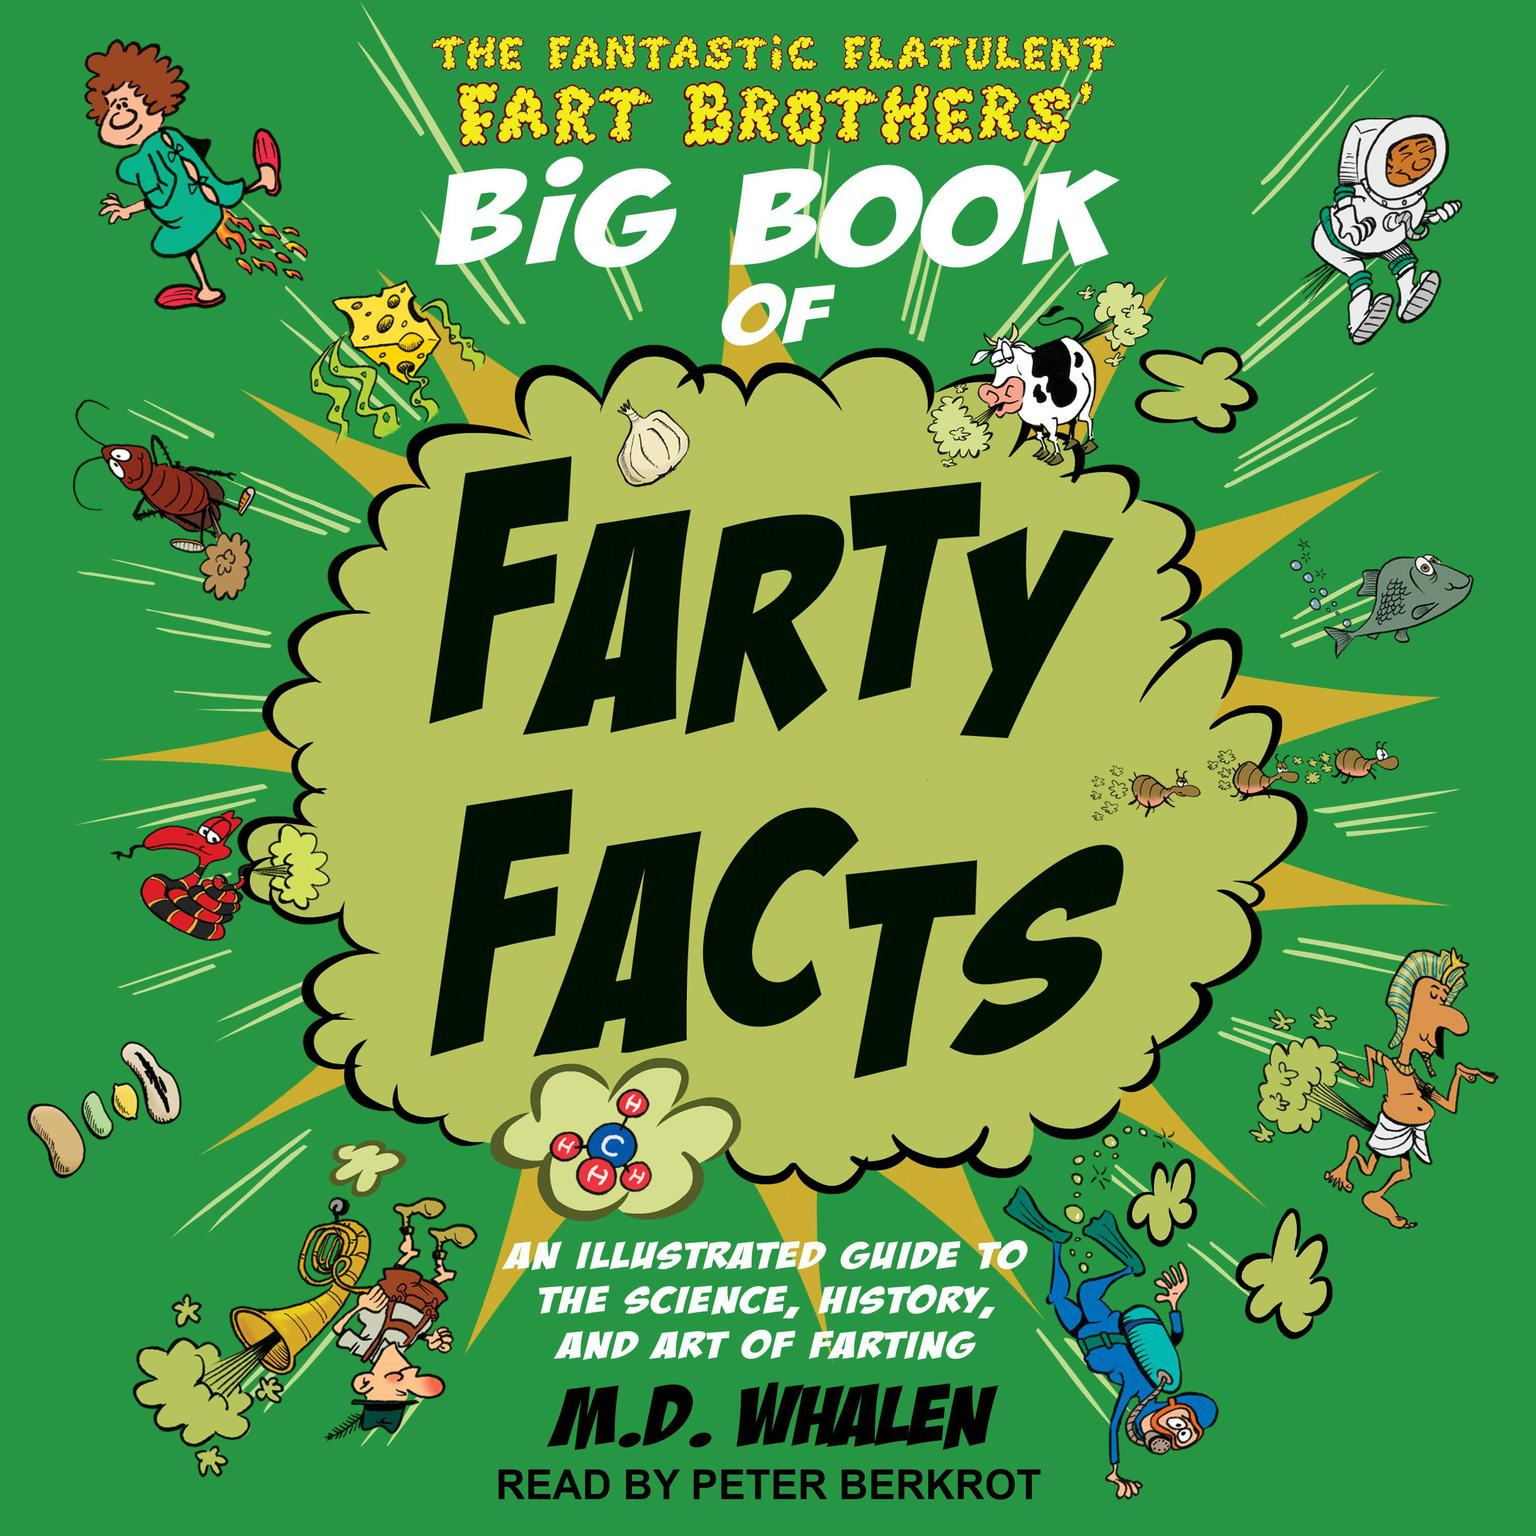 The Fantastic Flatulent Fart Brothers Big Book of Farty Facts: An Illustrated Guide to the Science, History, and Art of Farting Audiobook, by M.D. Whalen